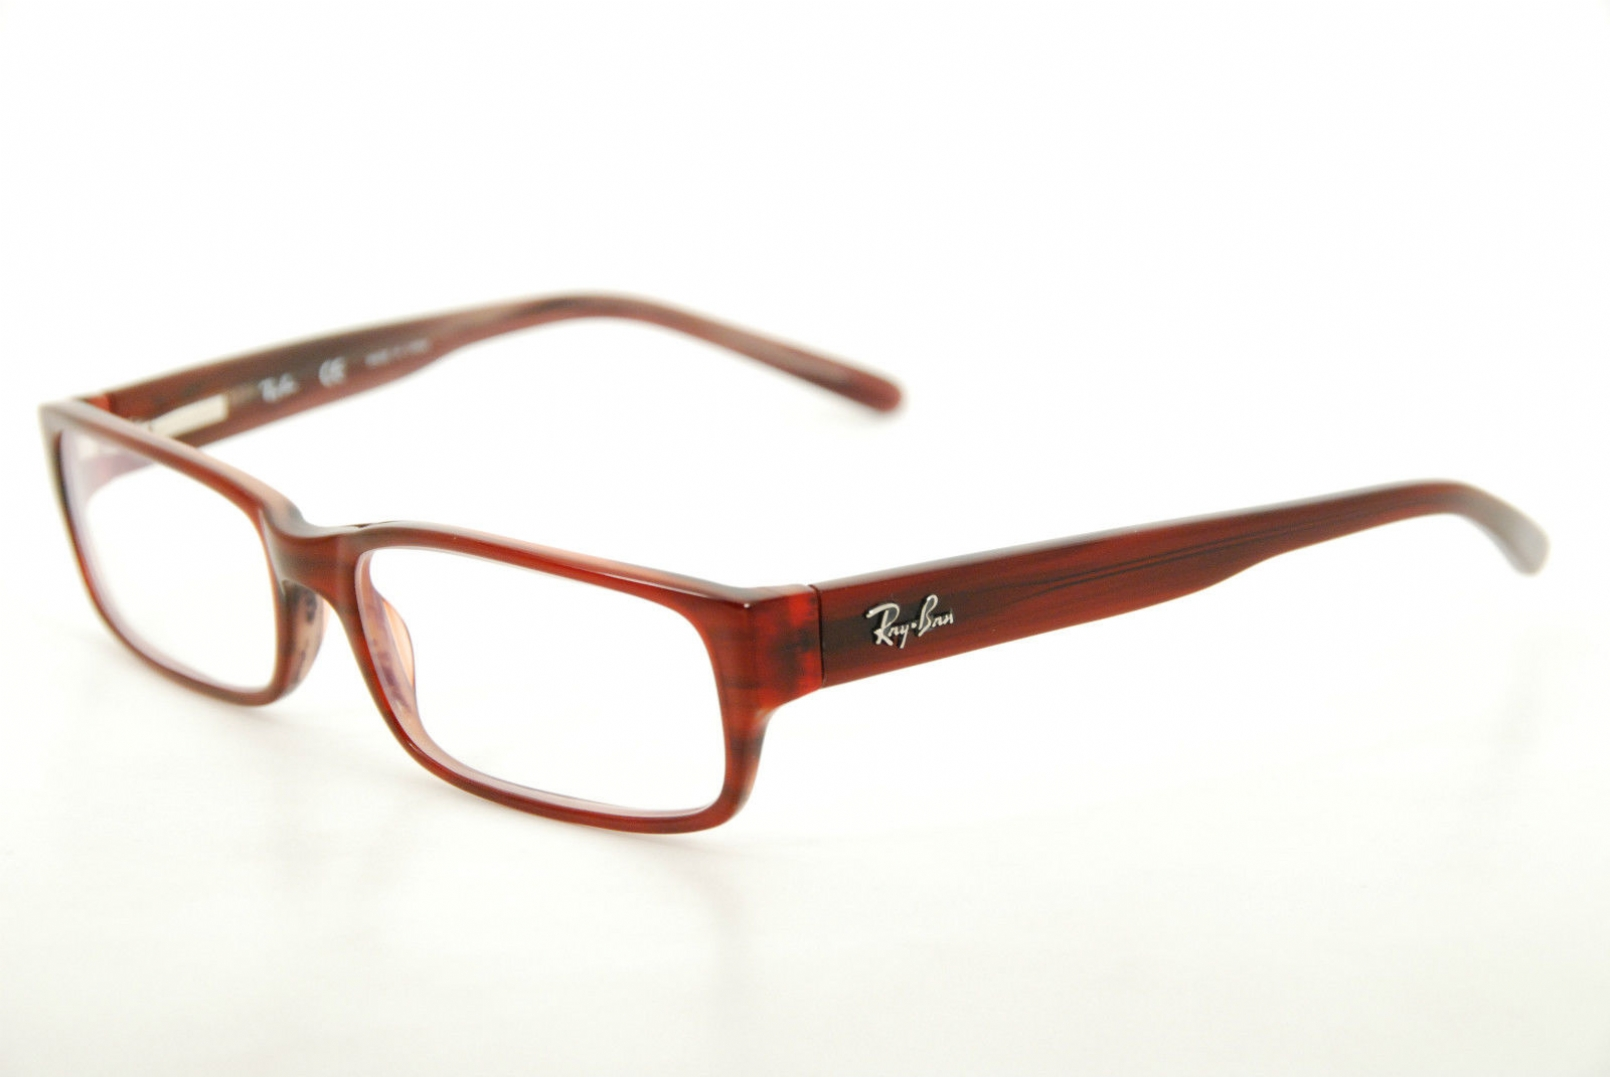 RAY BAN 5078 in color 2210